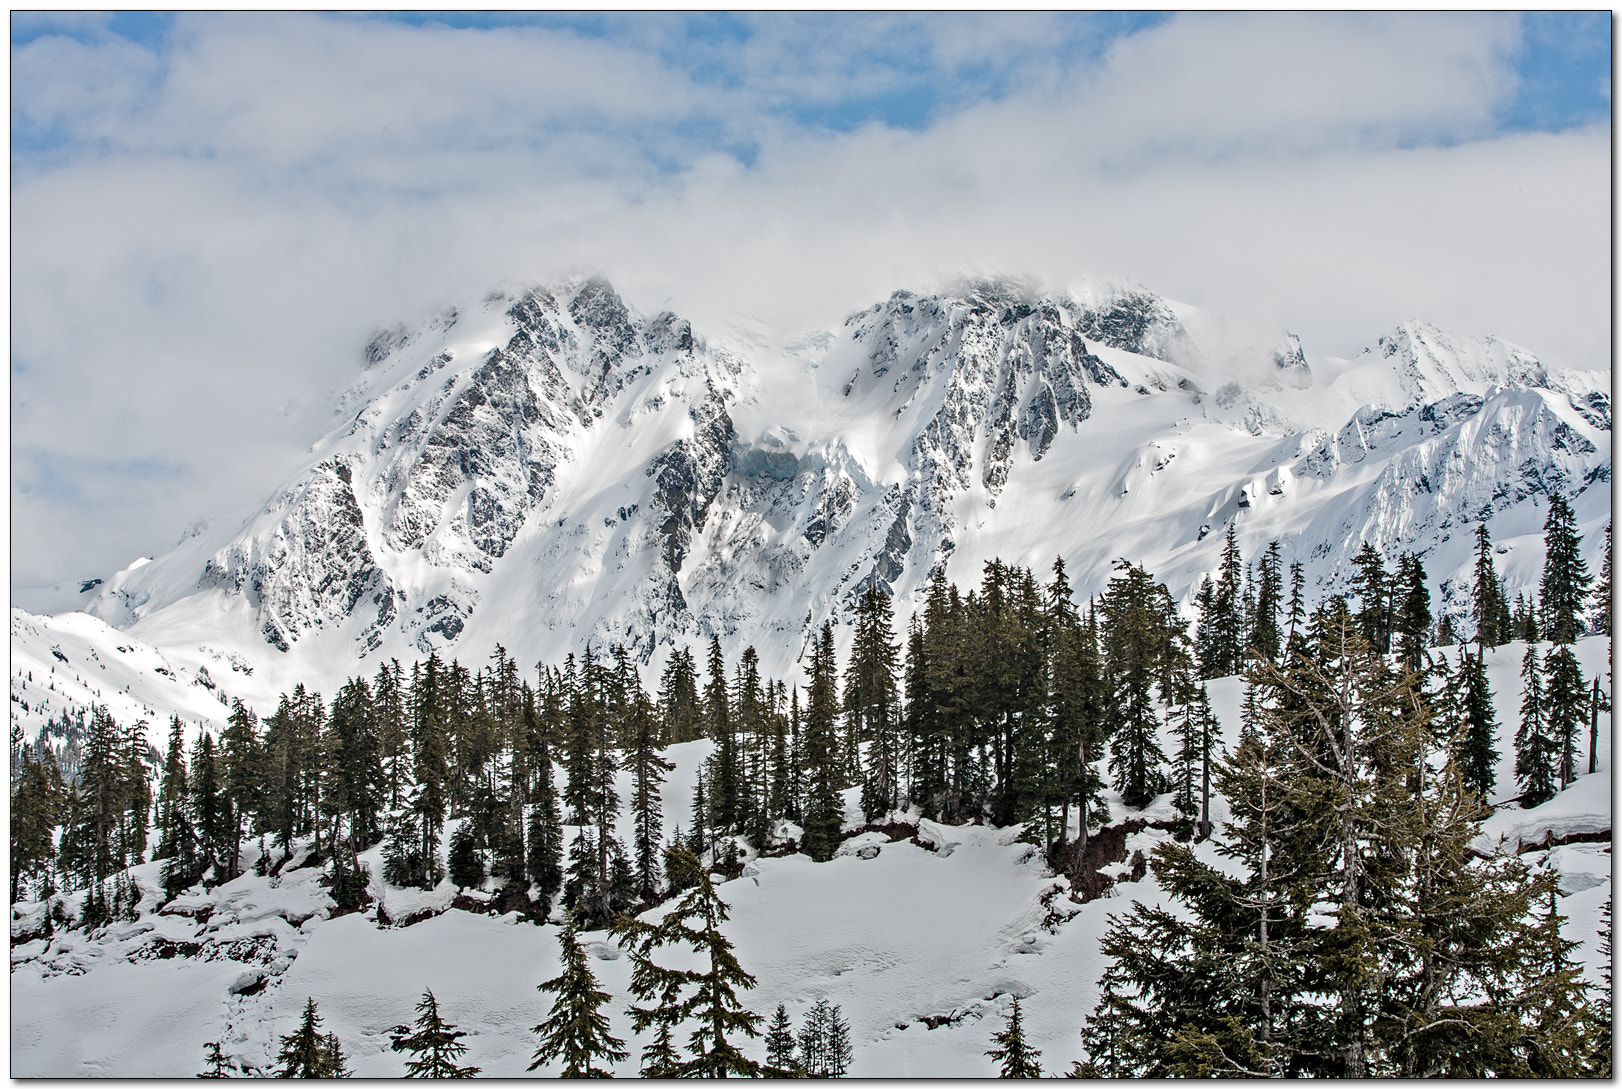 Photograph Mt. Shuksan Winter by Jameel Hyder on 500px